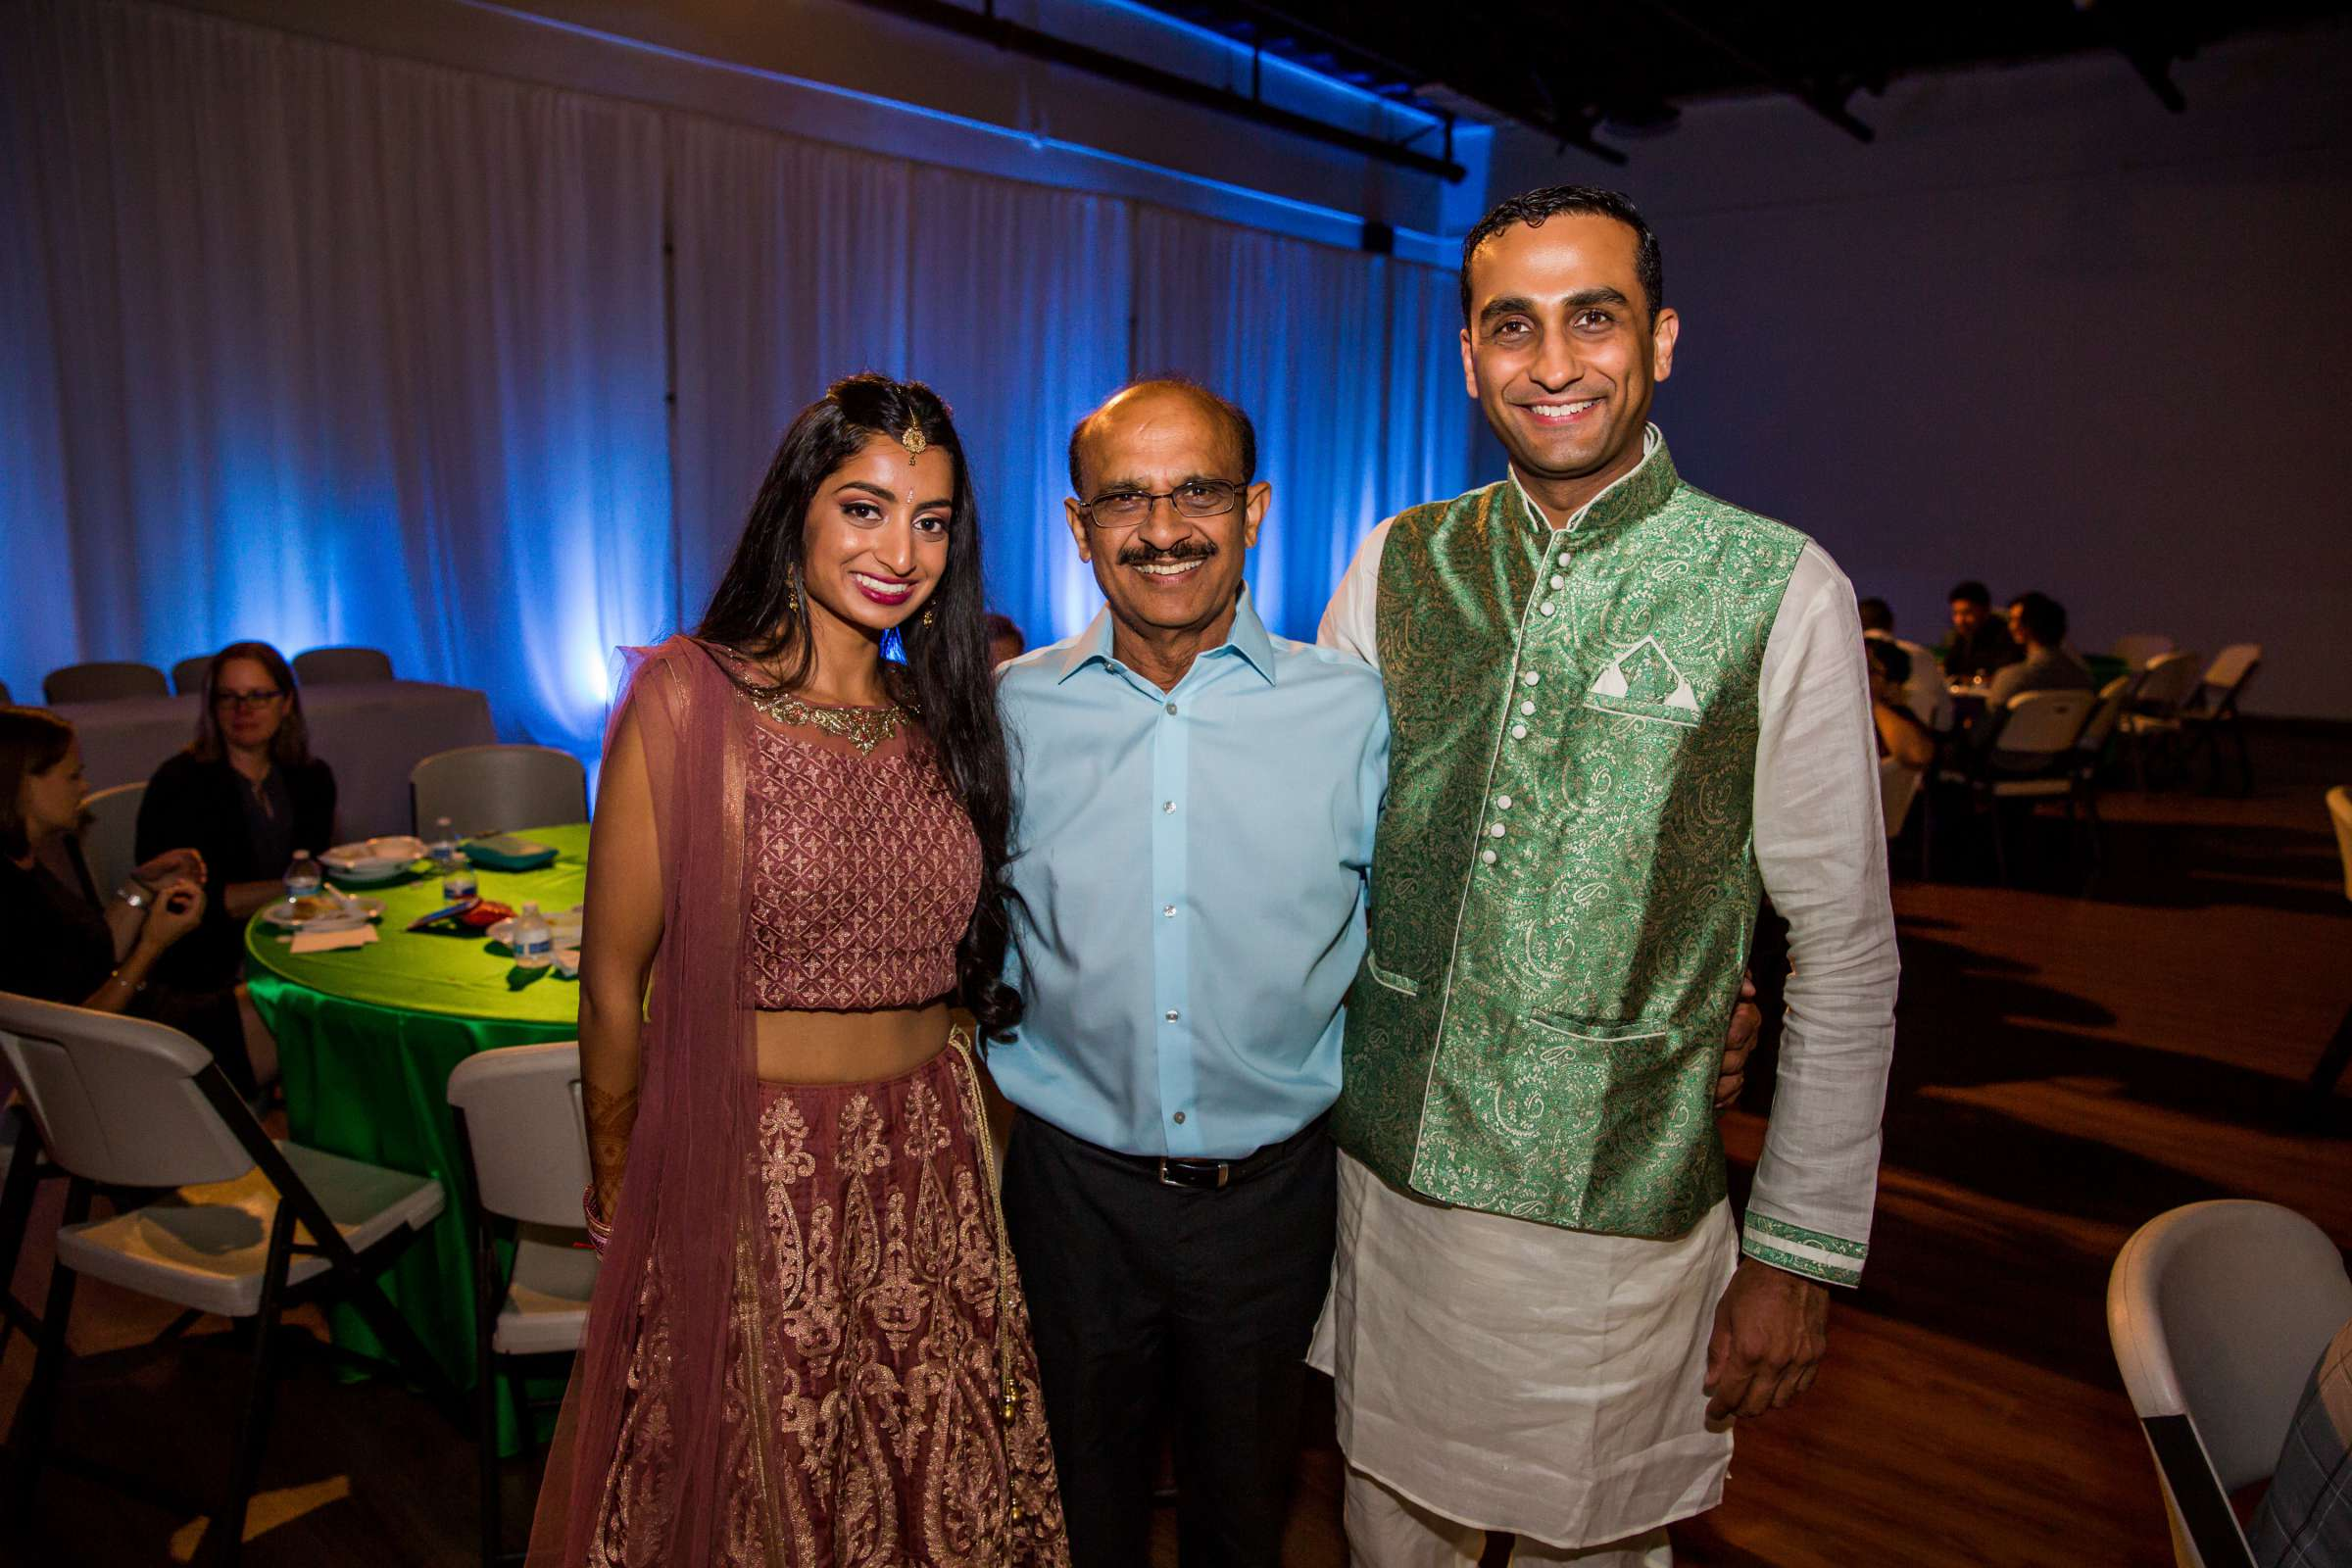 The Westin Carlsbad Resort and Spa Wedding coordinated by Shilpa Patel Events, Ami and Amit Wedding Photo #124 by True Photography